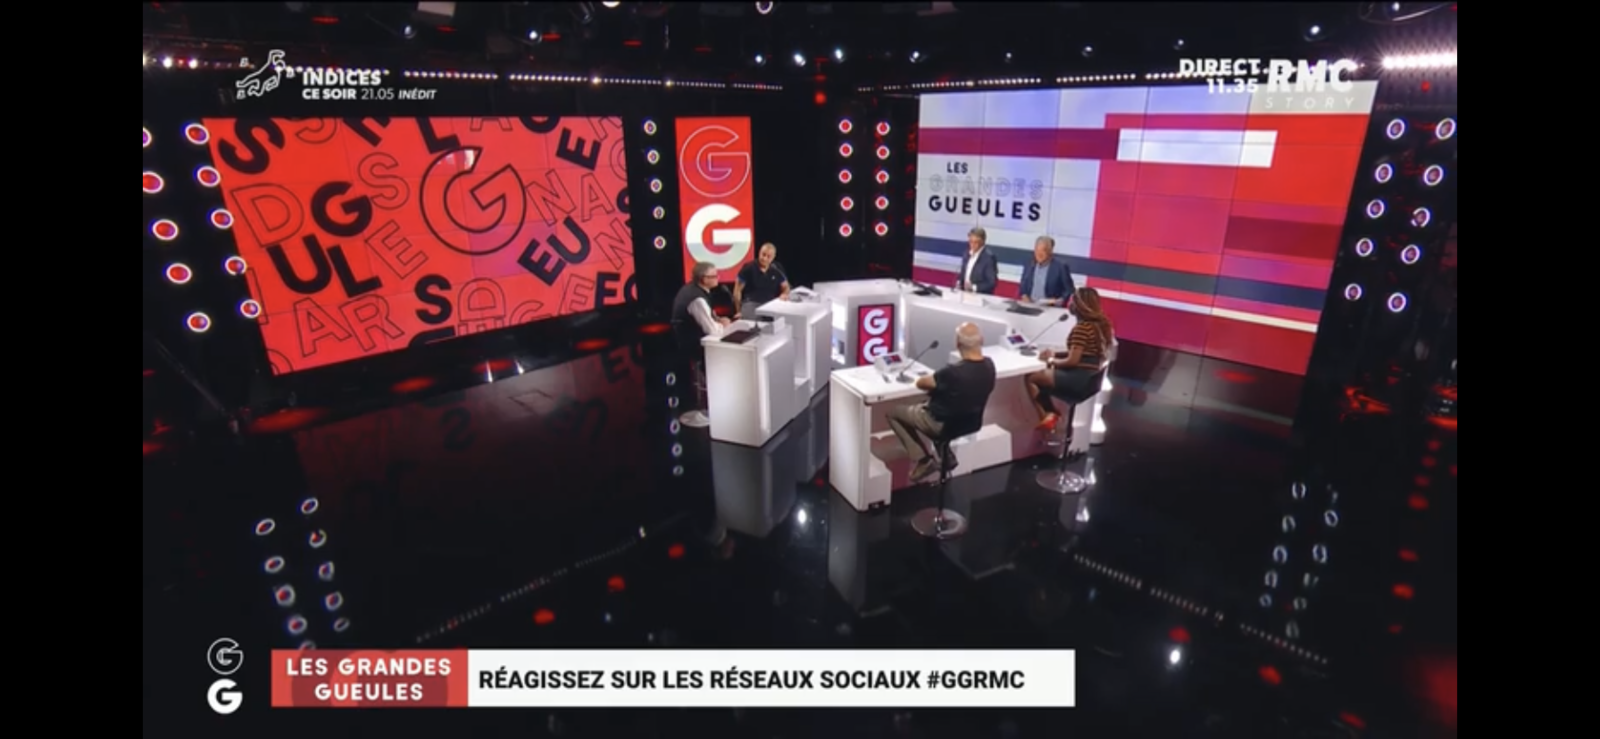 Michel Onfray - Les Grandes Gueules (RMC) - 03.09.2021